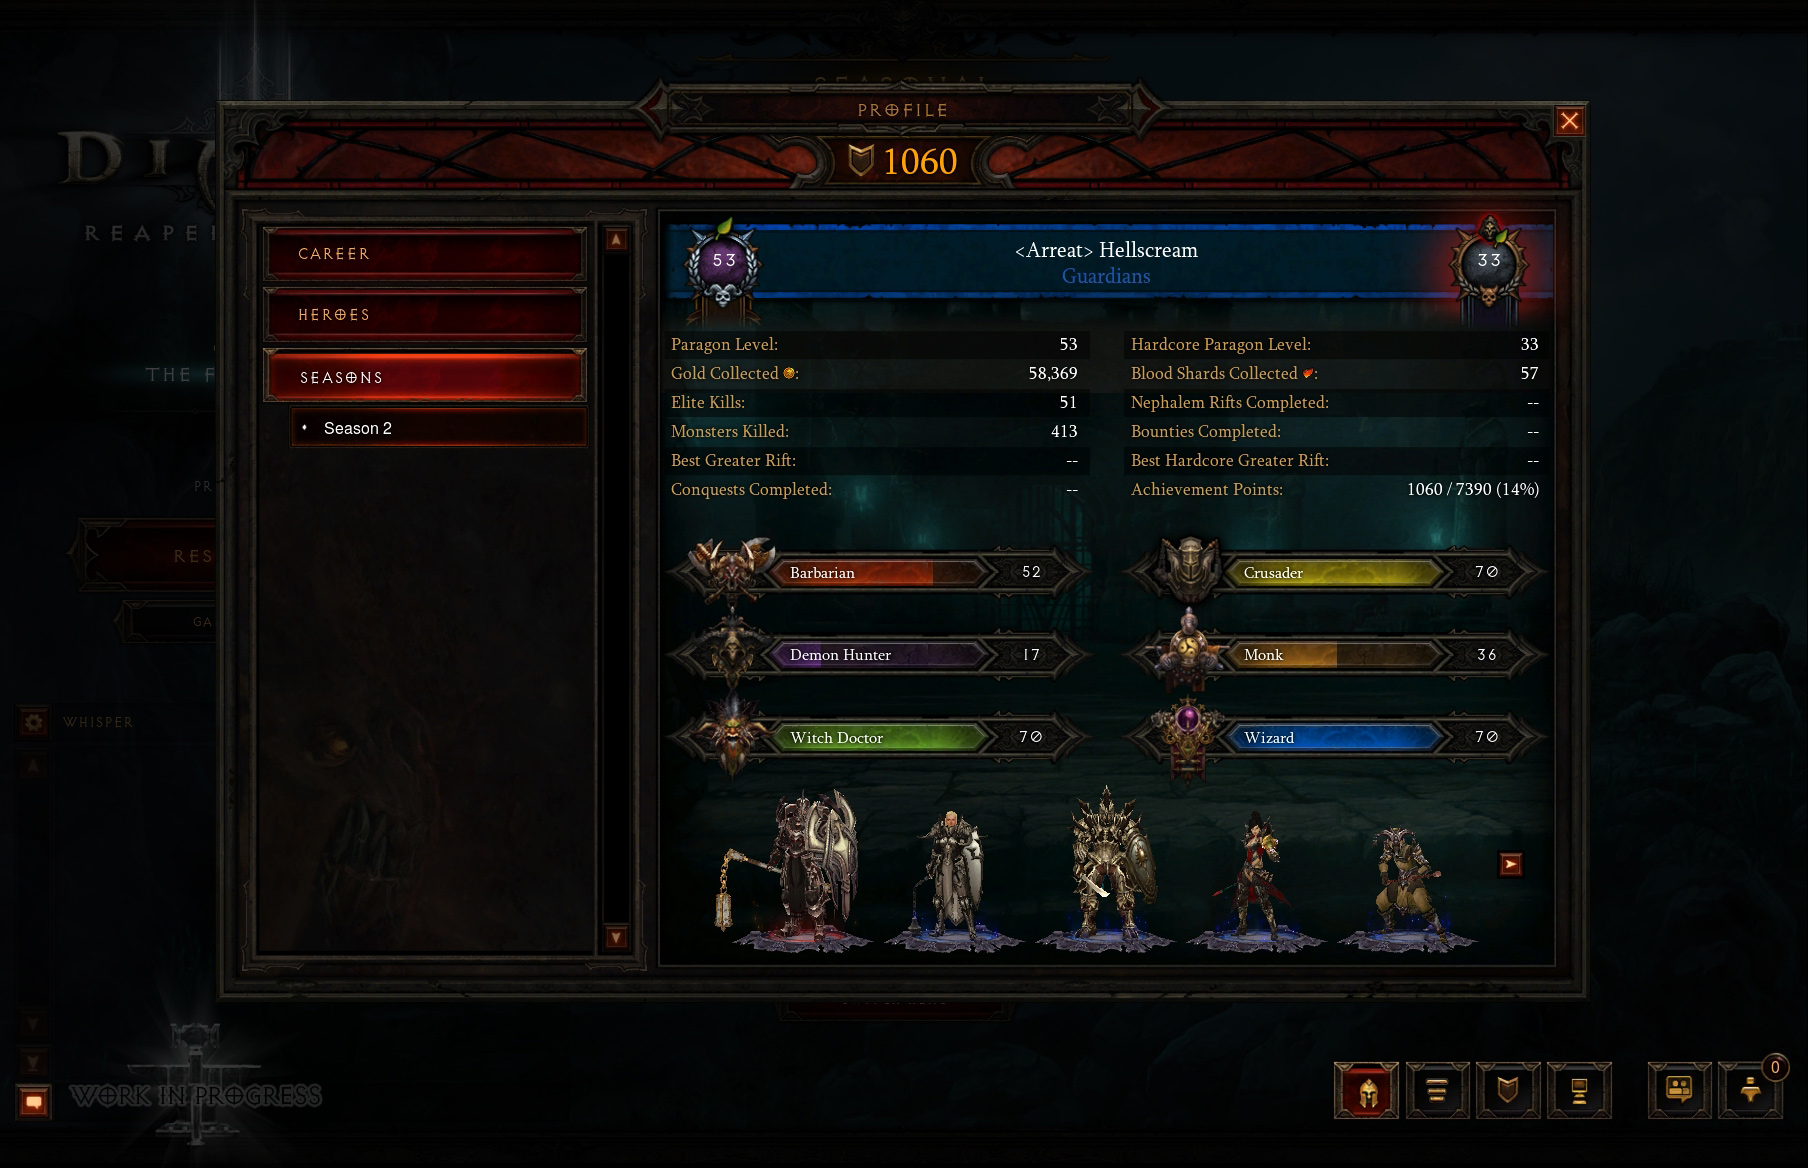 More Info on Diablo III Character Profiles - Diablo 3